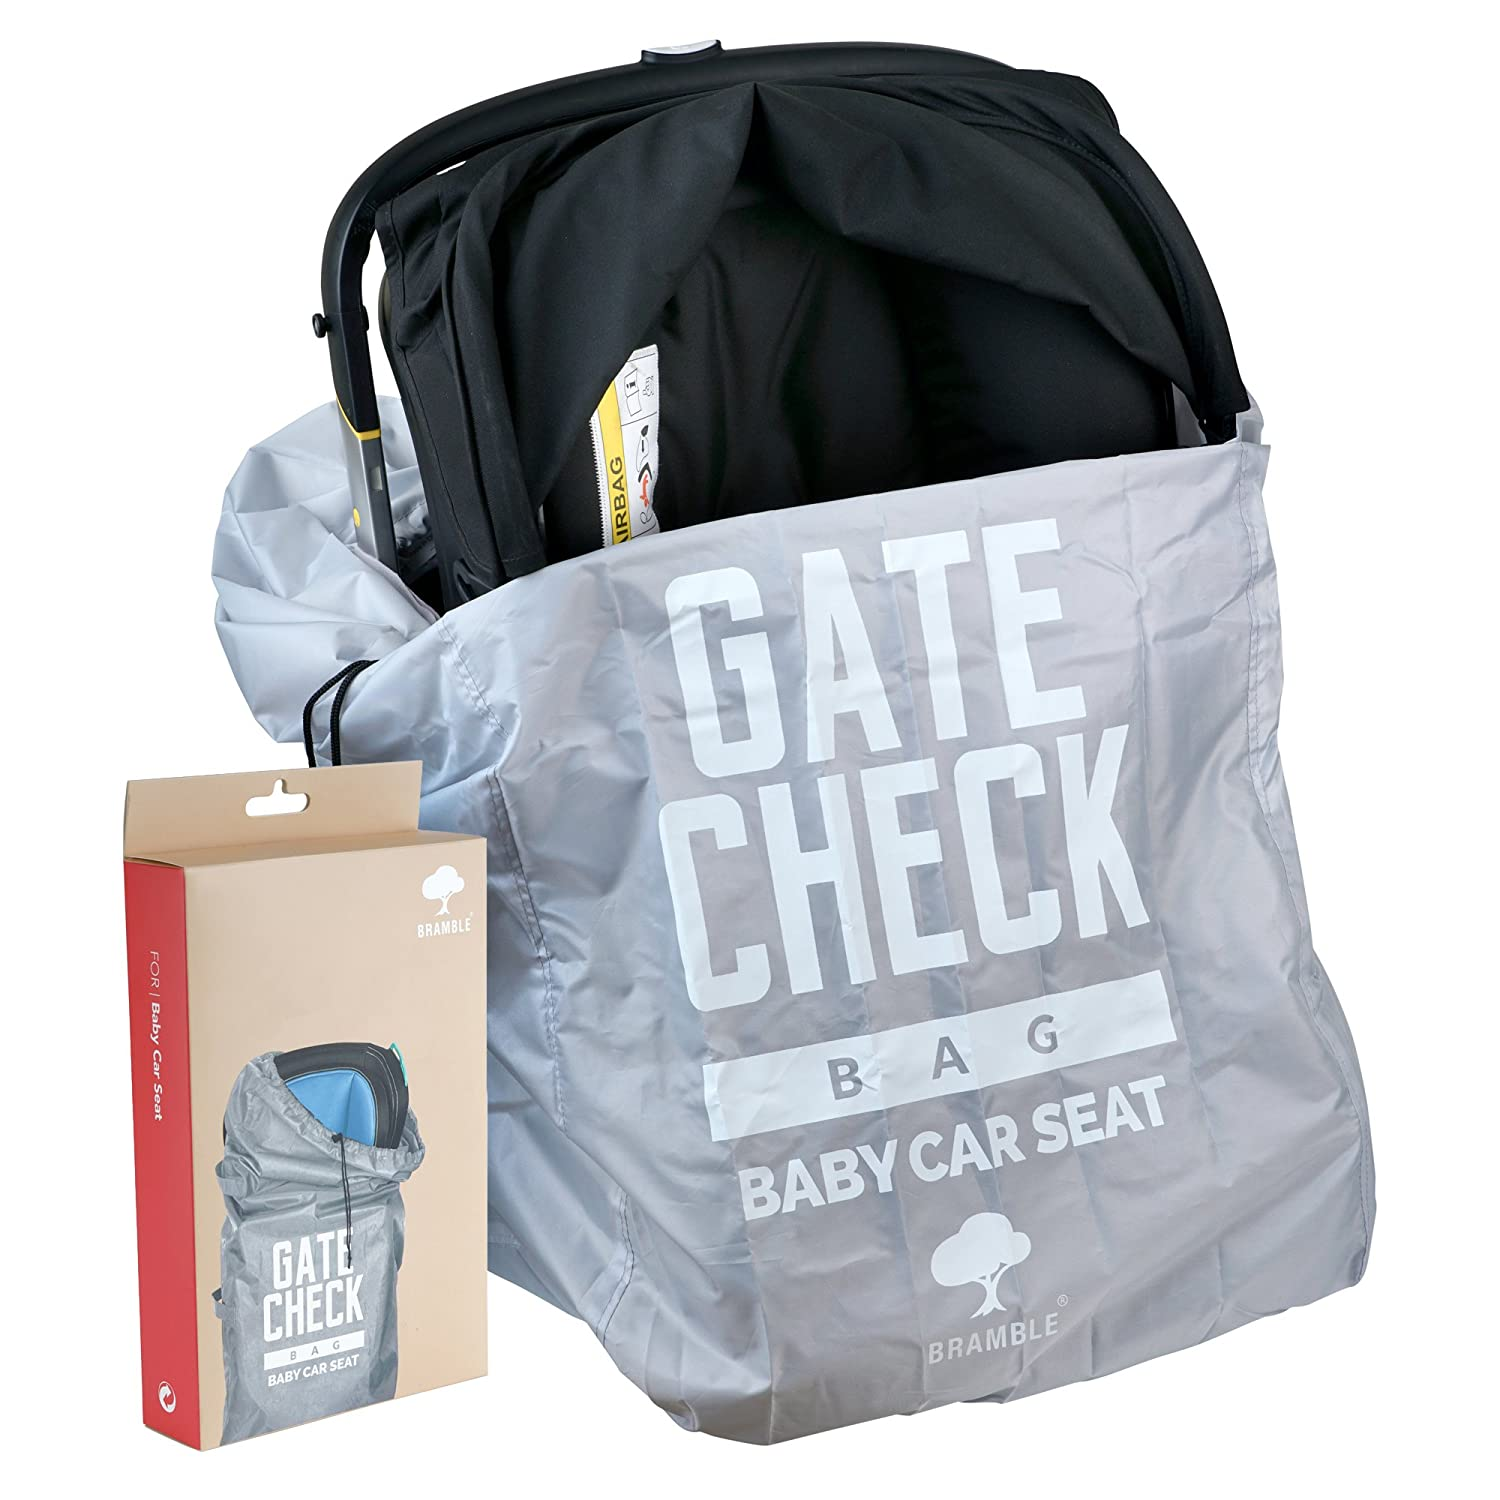 Baby Car Seat Travel Bag - Ideal for Airplane Gate Check In - Easy to Carry and Identify at Airport Baggage Carousel Bramble